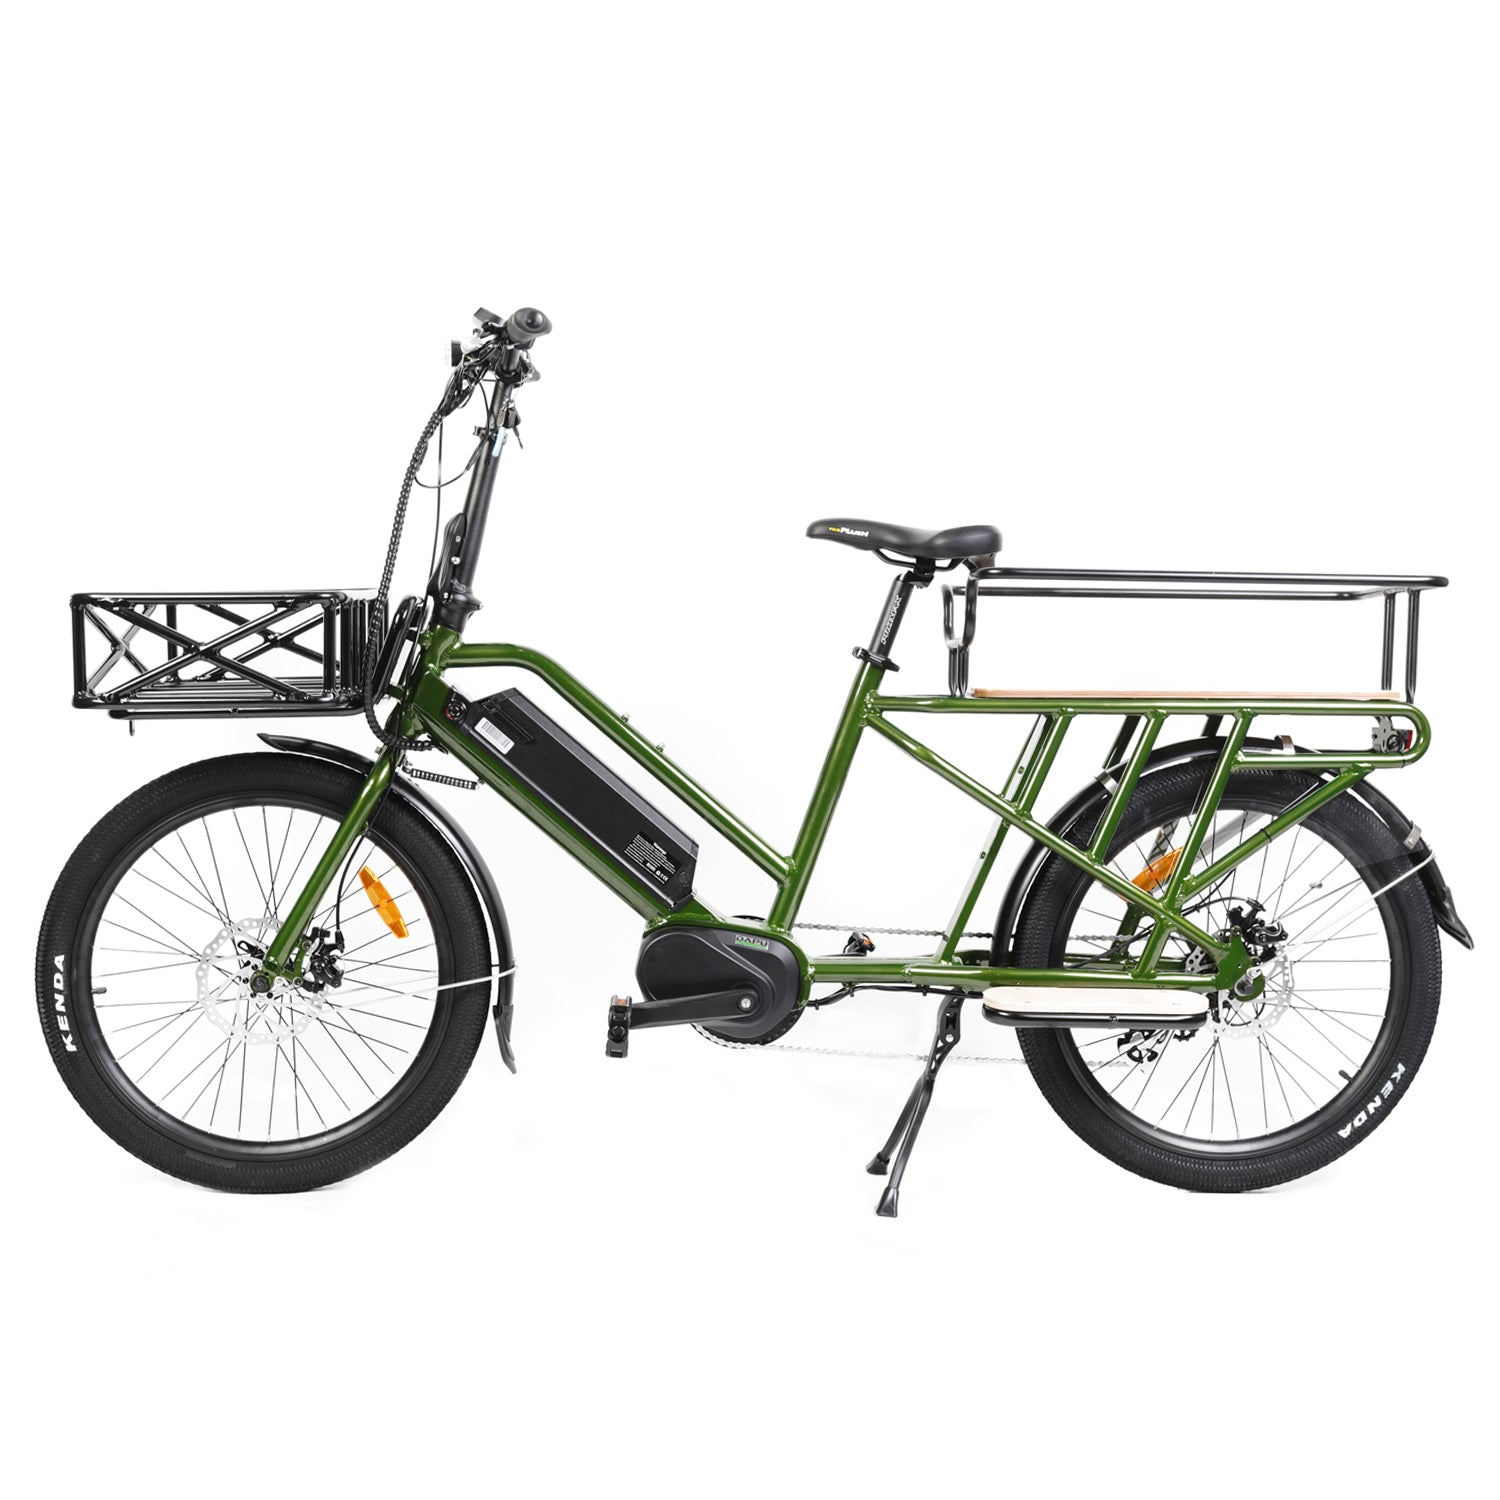 "Eunorau The 24"" City Tire Model G20-CARGO E-Bike"